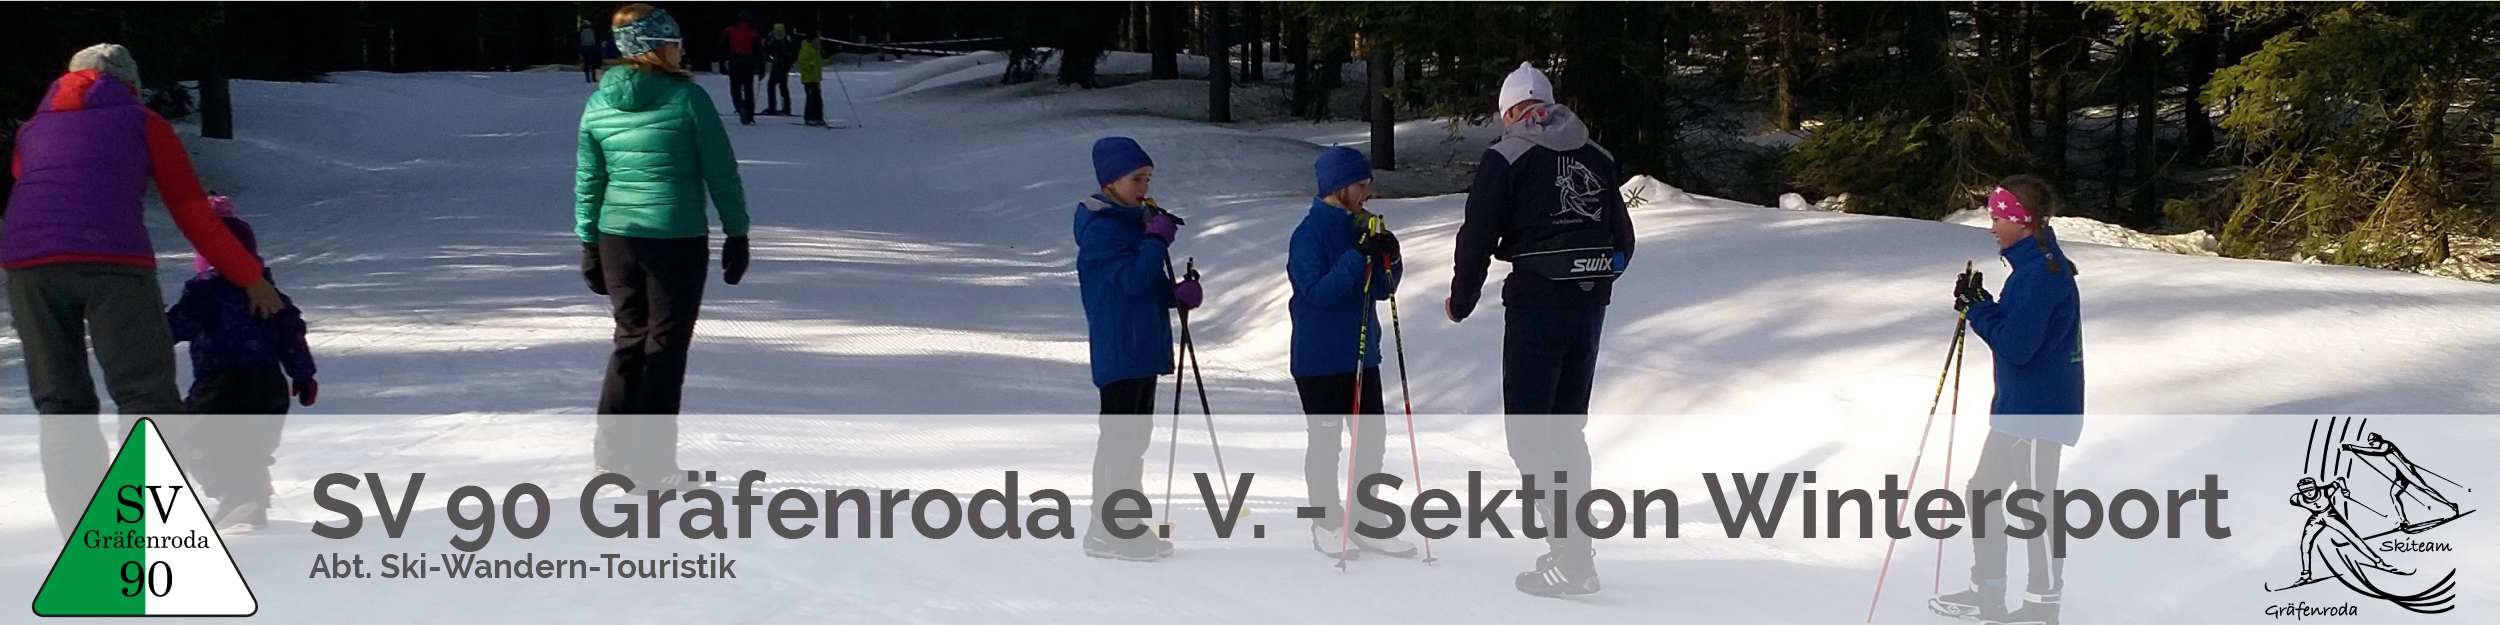 SV 90 Gräfenroda e.V. – Sektion Wintersport